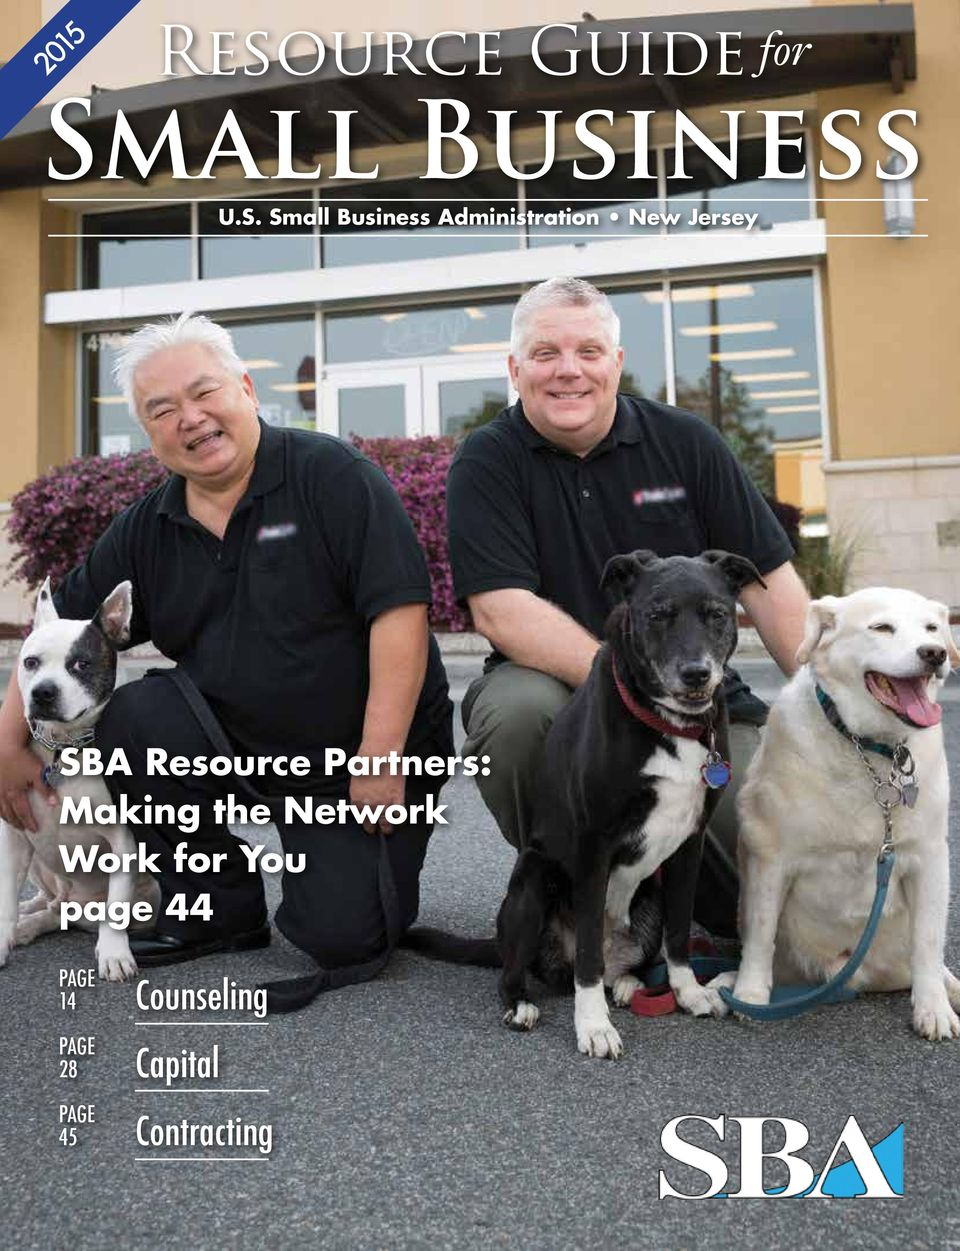 Small Business Administration New Jersey SBA